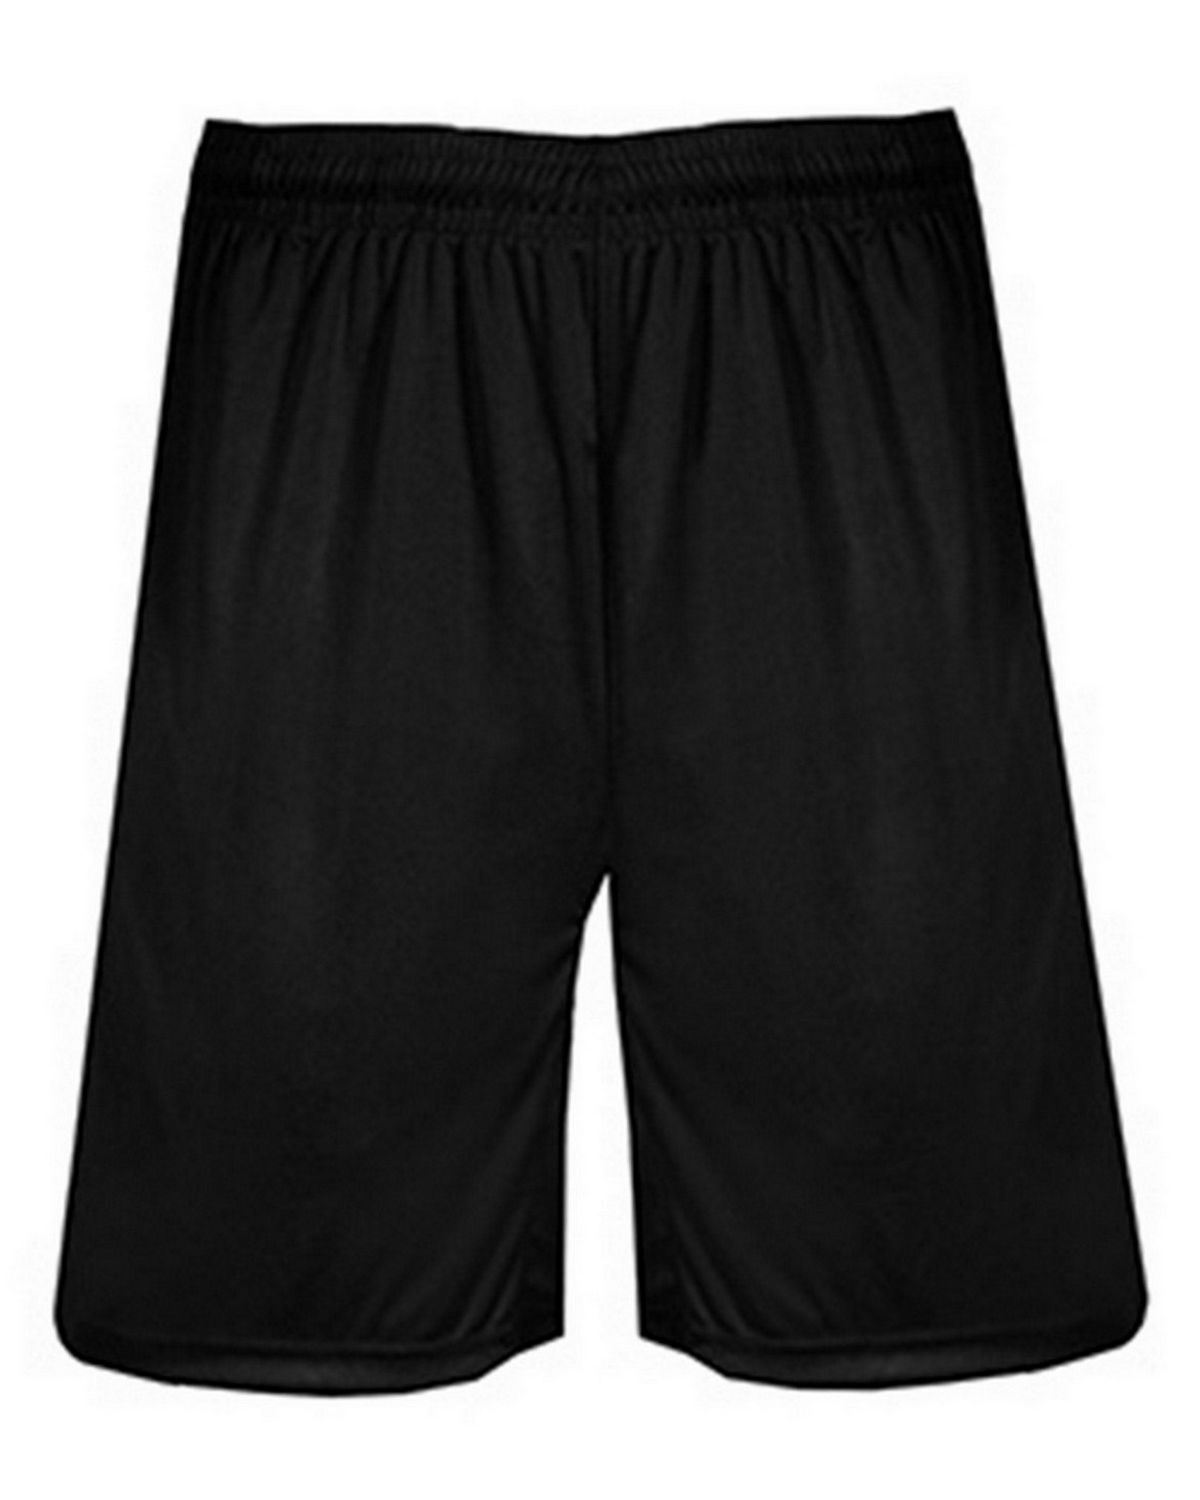 Badger BD4110 Bt5 Trainer Short - Black - 2X BD4110